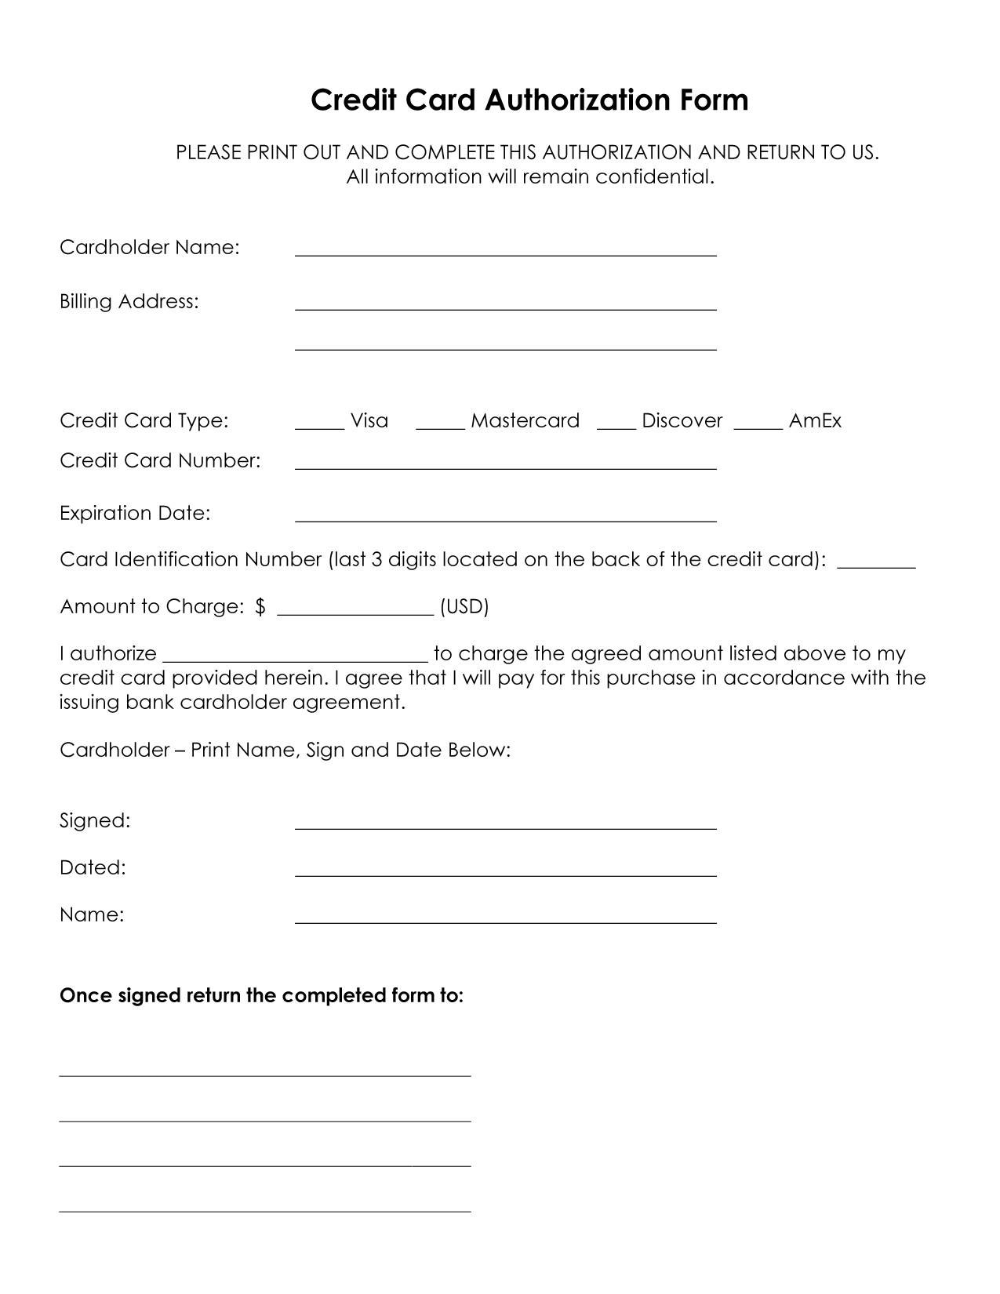 Credit Card Authorization Form Template Download Pdf Word Throughout Credit Card Payment Slip Template In 2020 Credit Card Images Hotel Credit Cards Credit Card Design